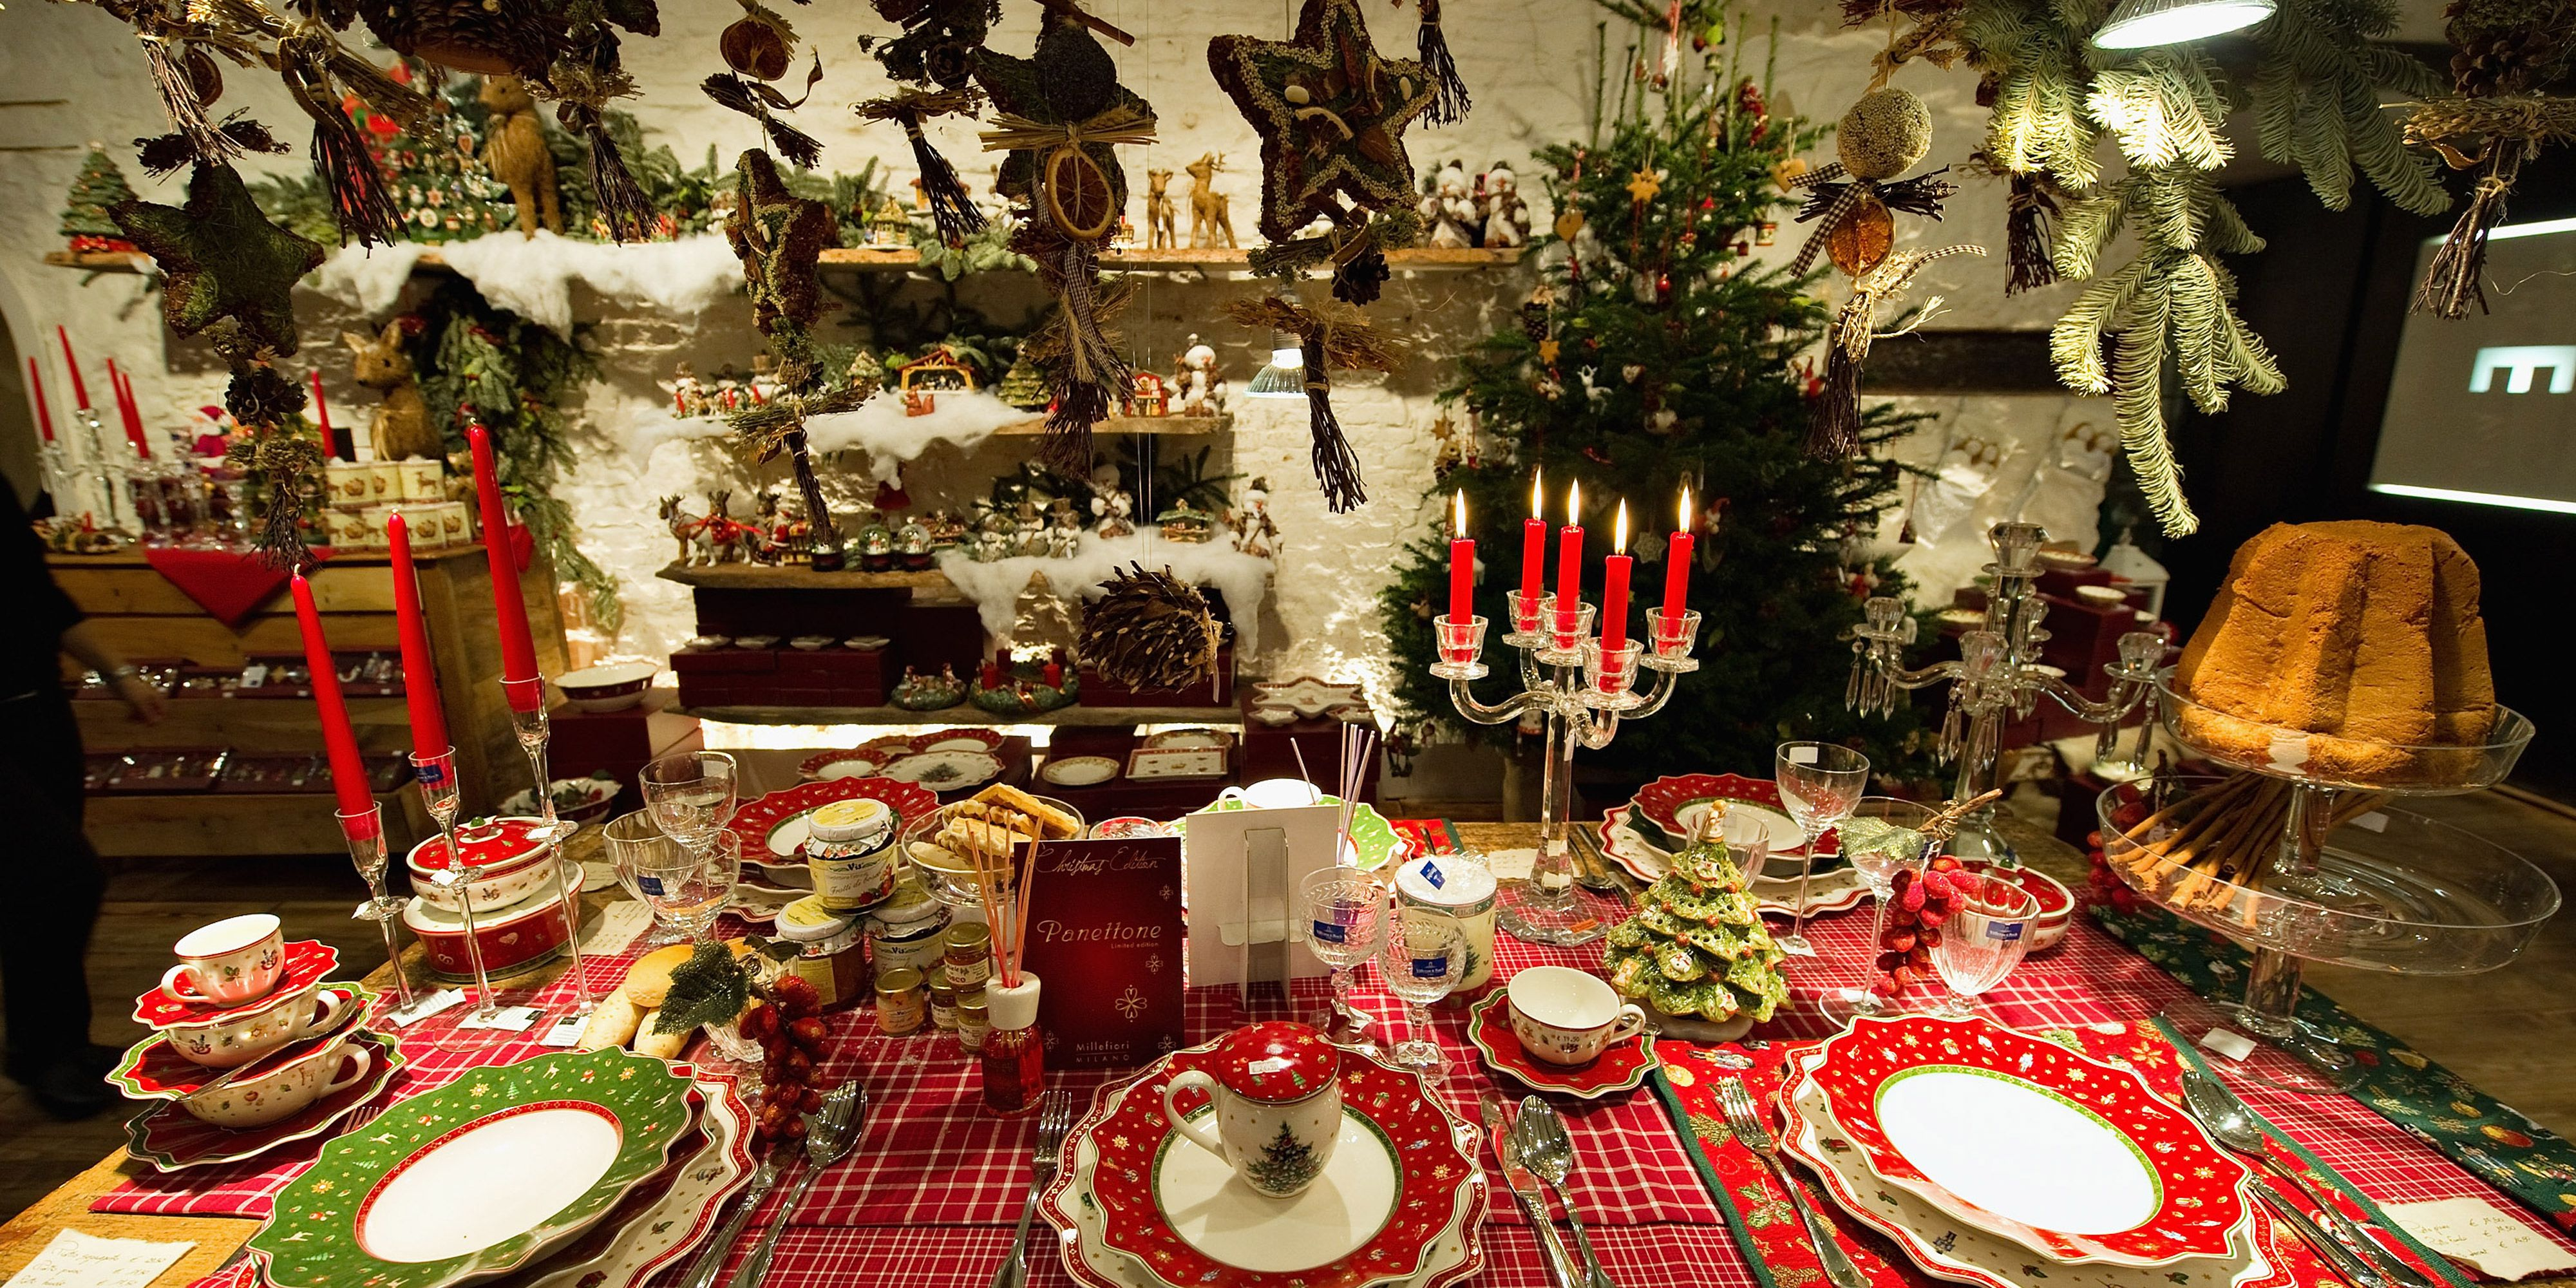 How To Decorate The Table For Christmas